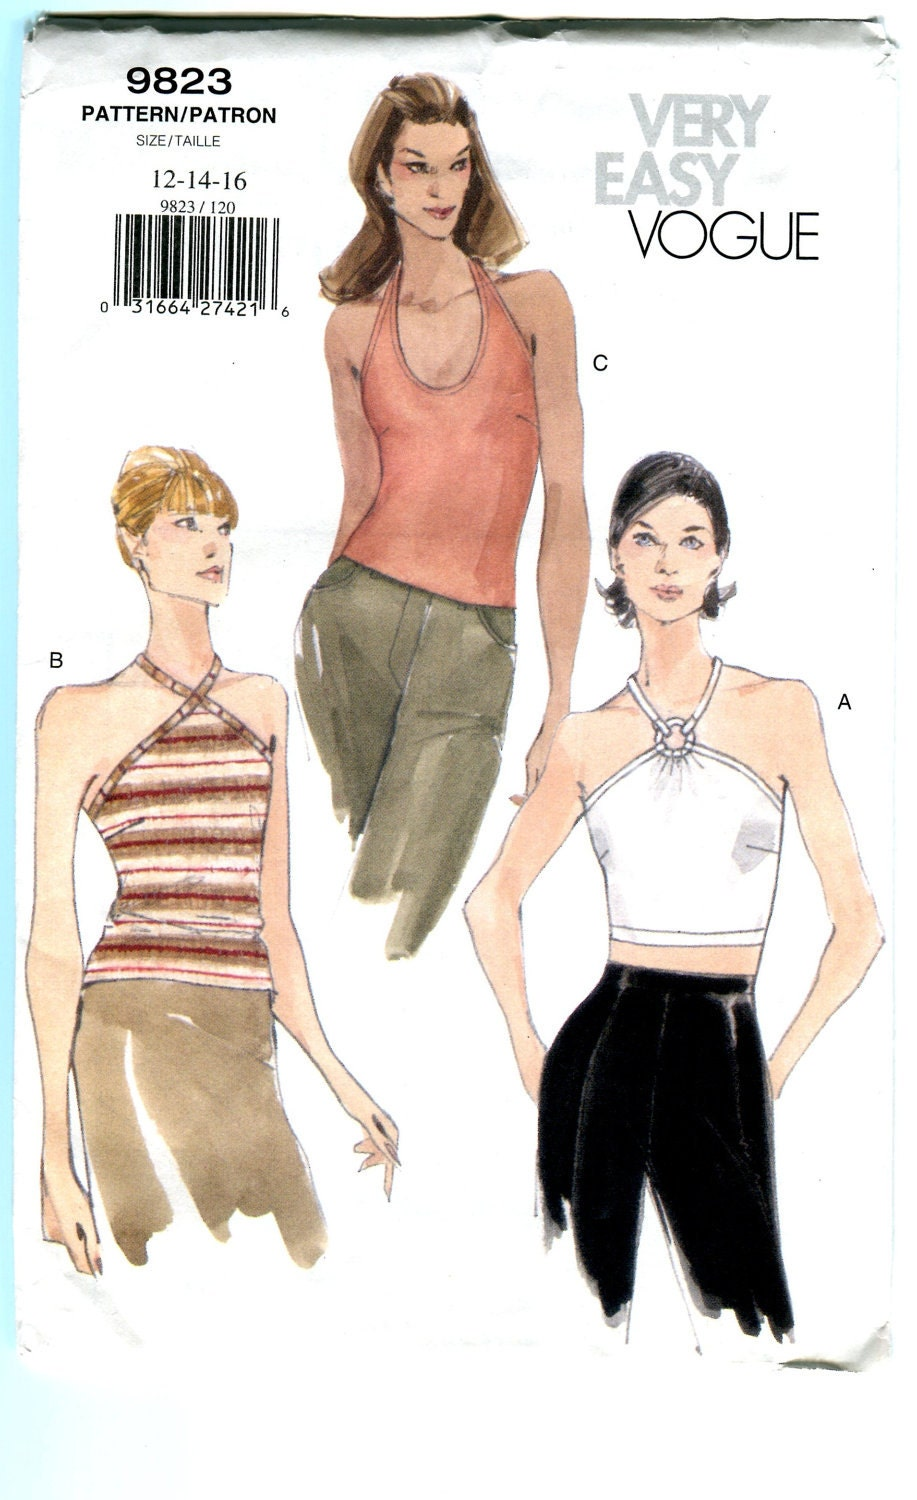 Turn a T-Shirt into a Halter Top - About